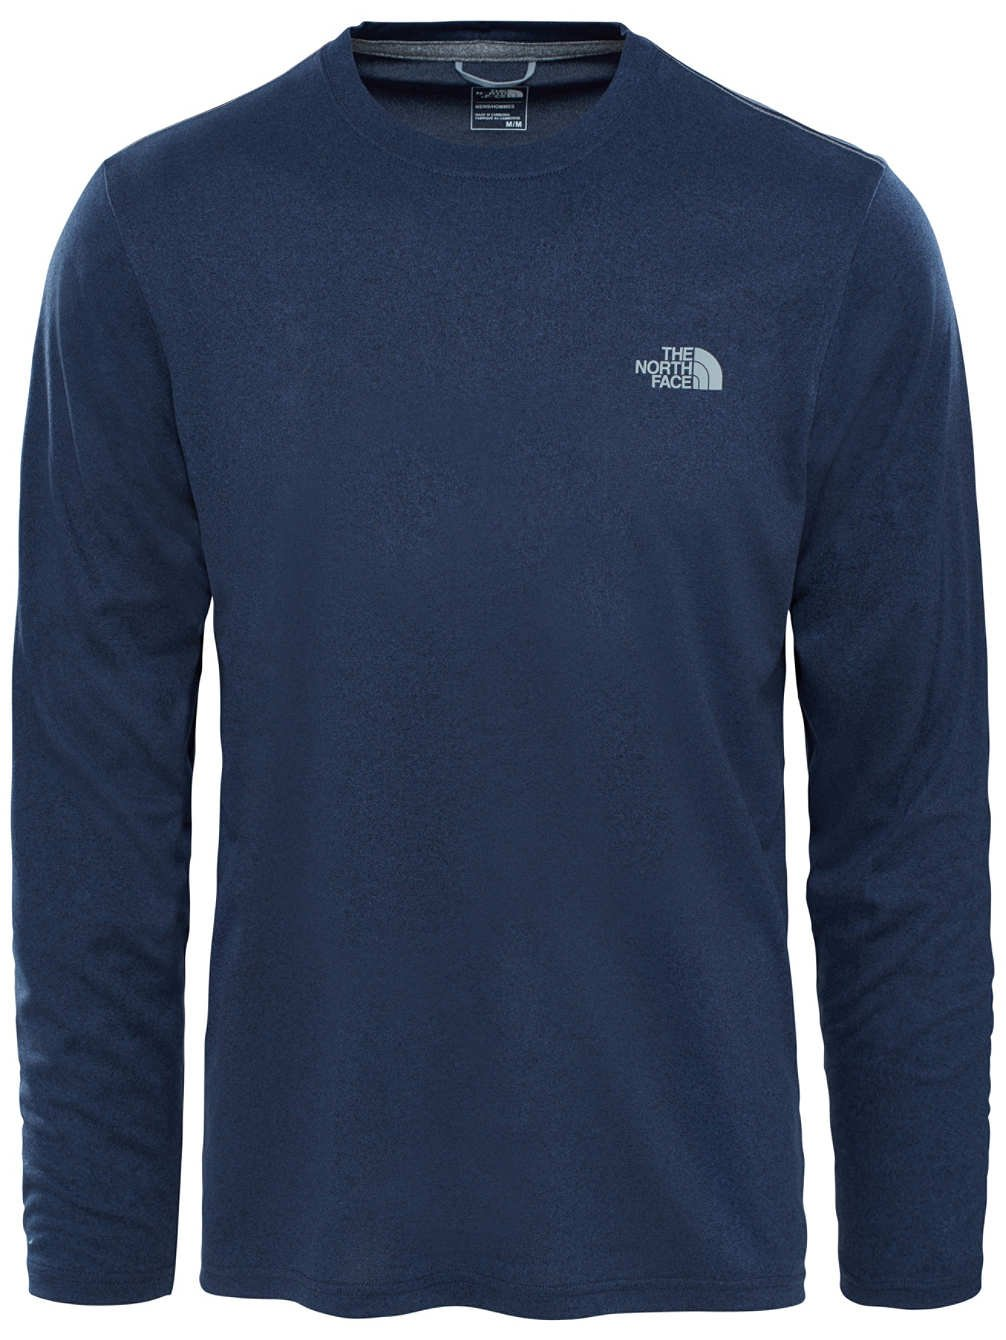 c4500122bb The North Face Reaxion Amp T- T-Shirt Manches Courtes Homme: Amazon.fr:  Sports et Loisirs